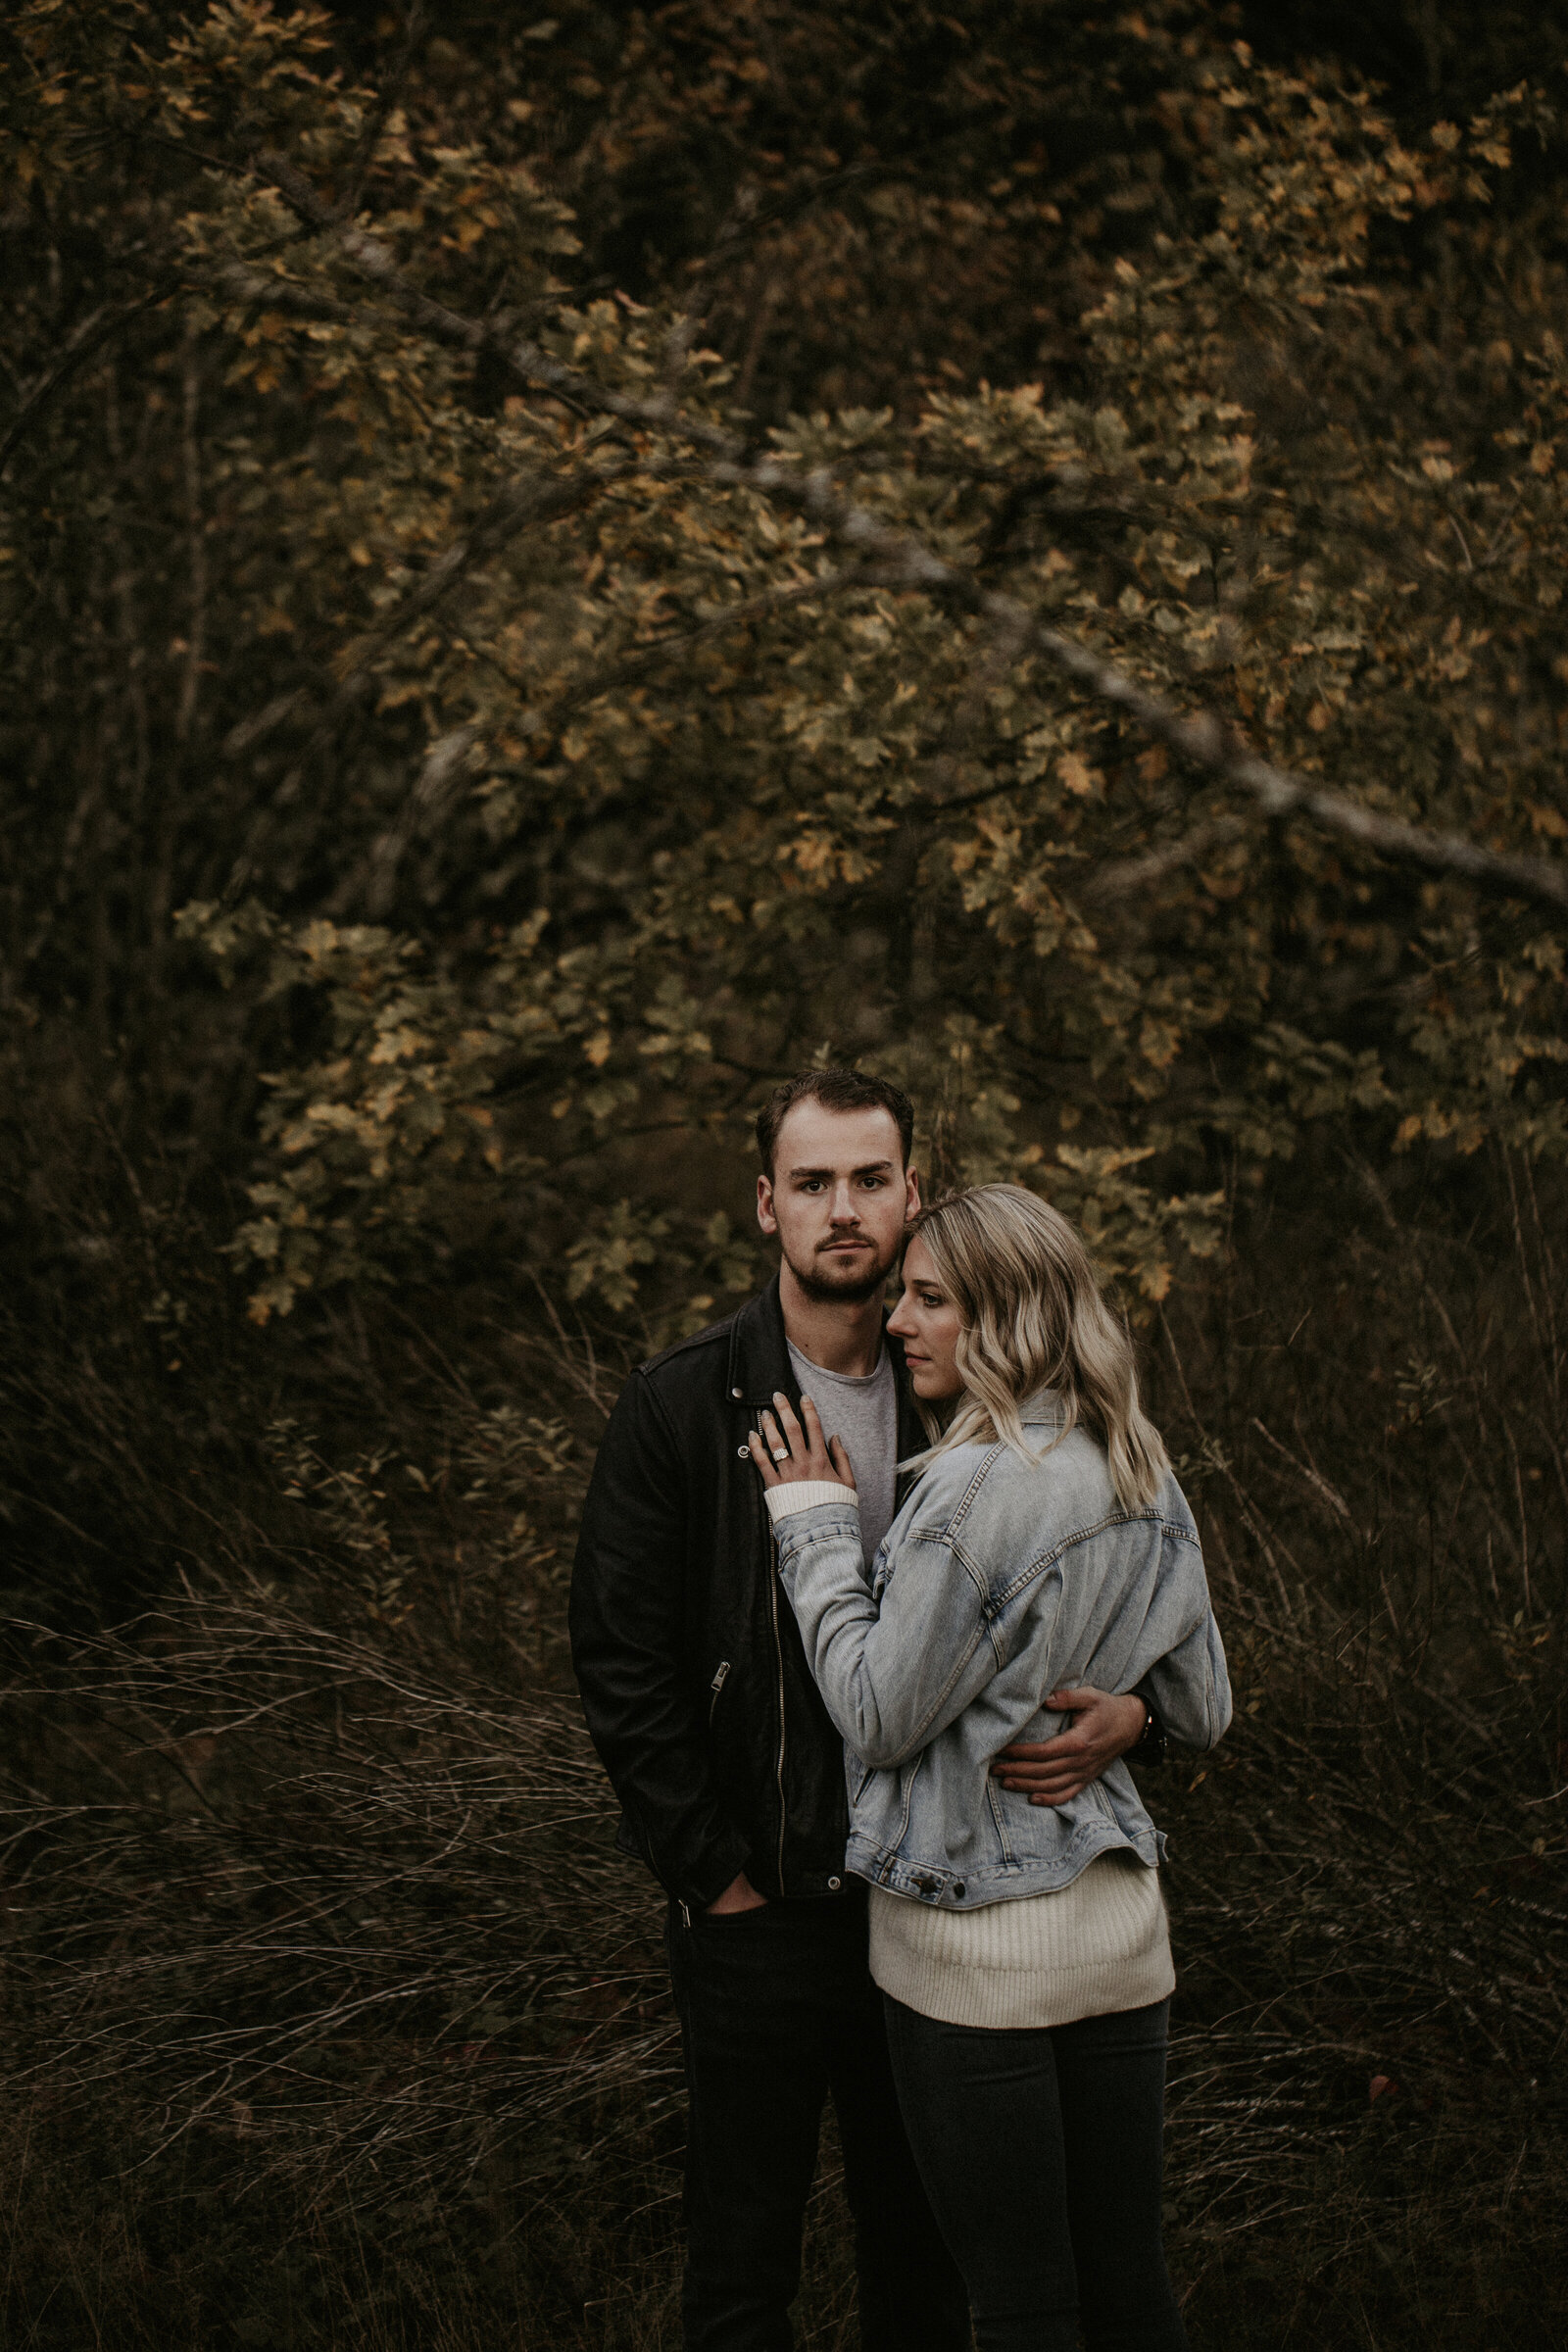 Kenzie-Tippe-Photography-Couples-Photography-26